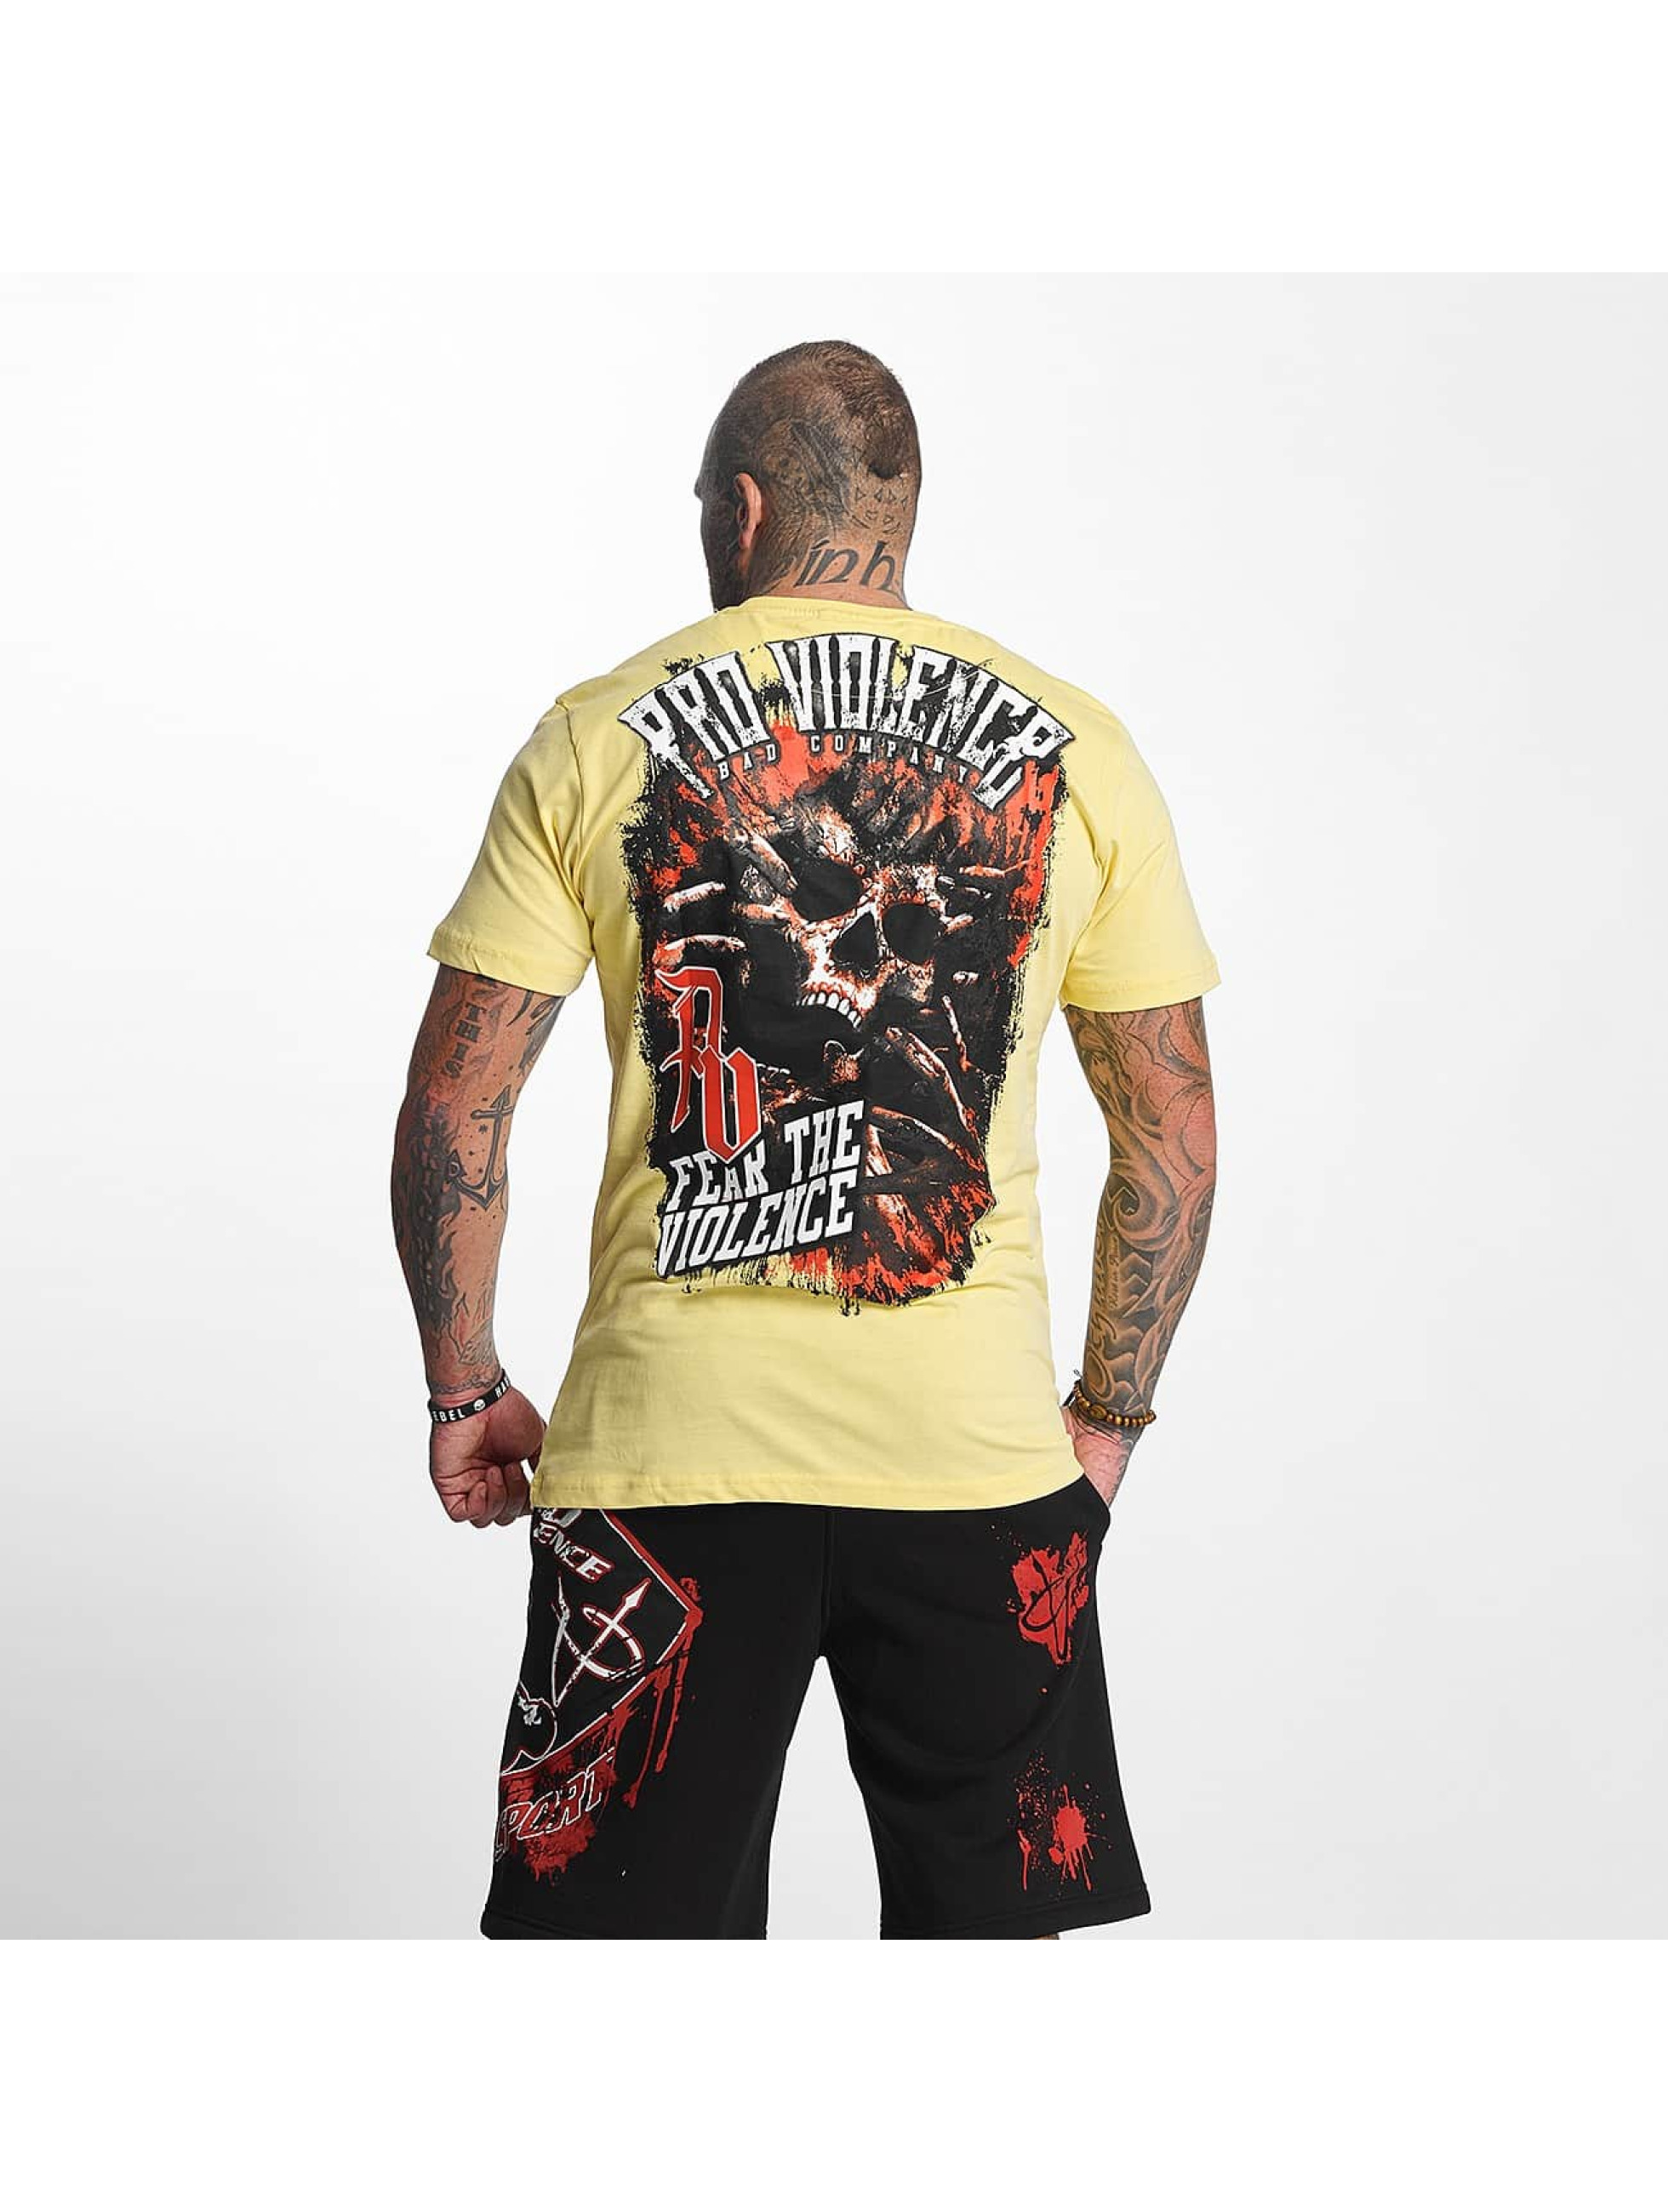 Pro Violence Streetwear T-Shirt The Violence Fear yellow